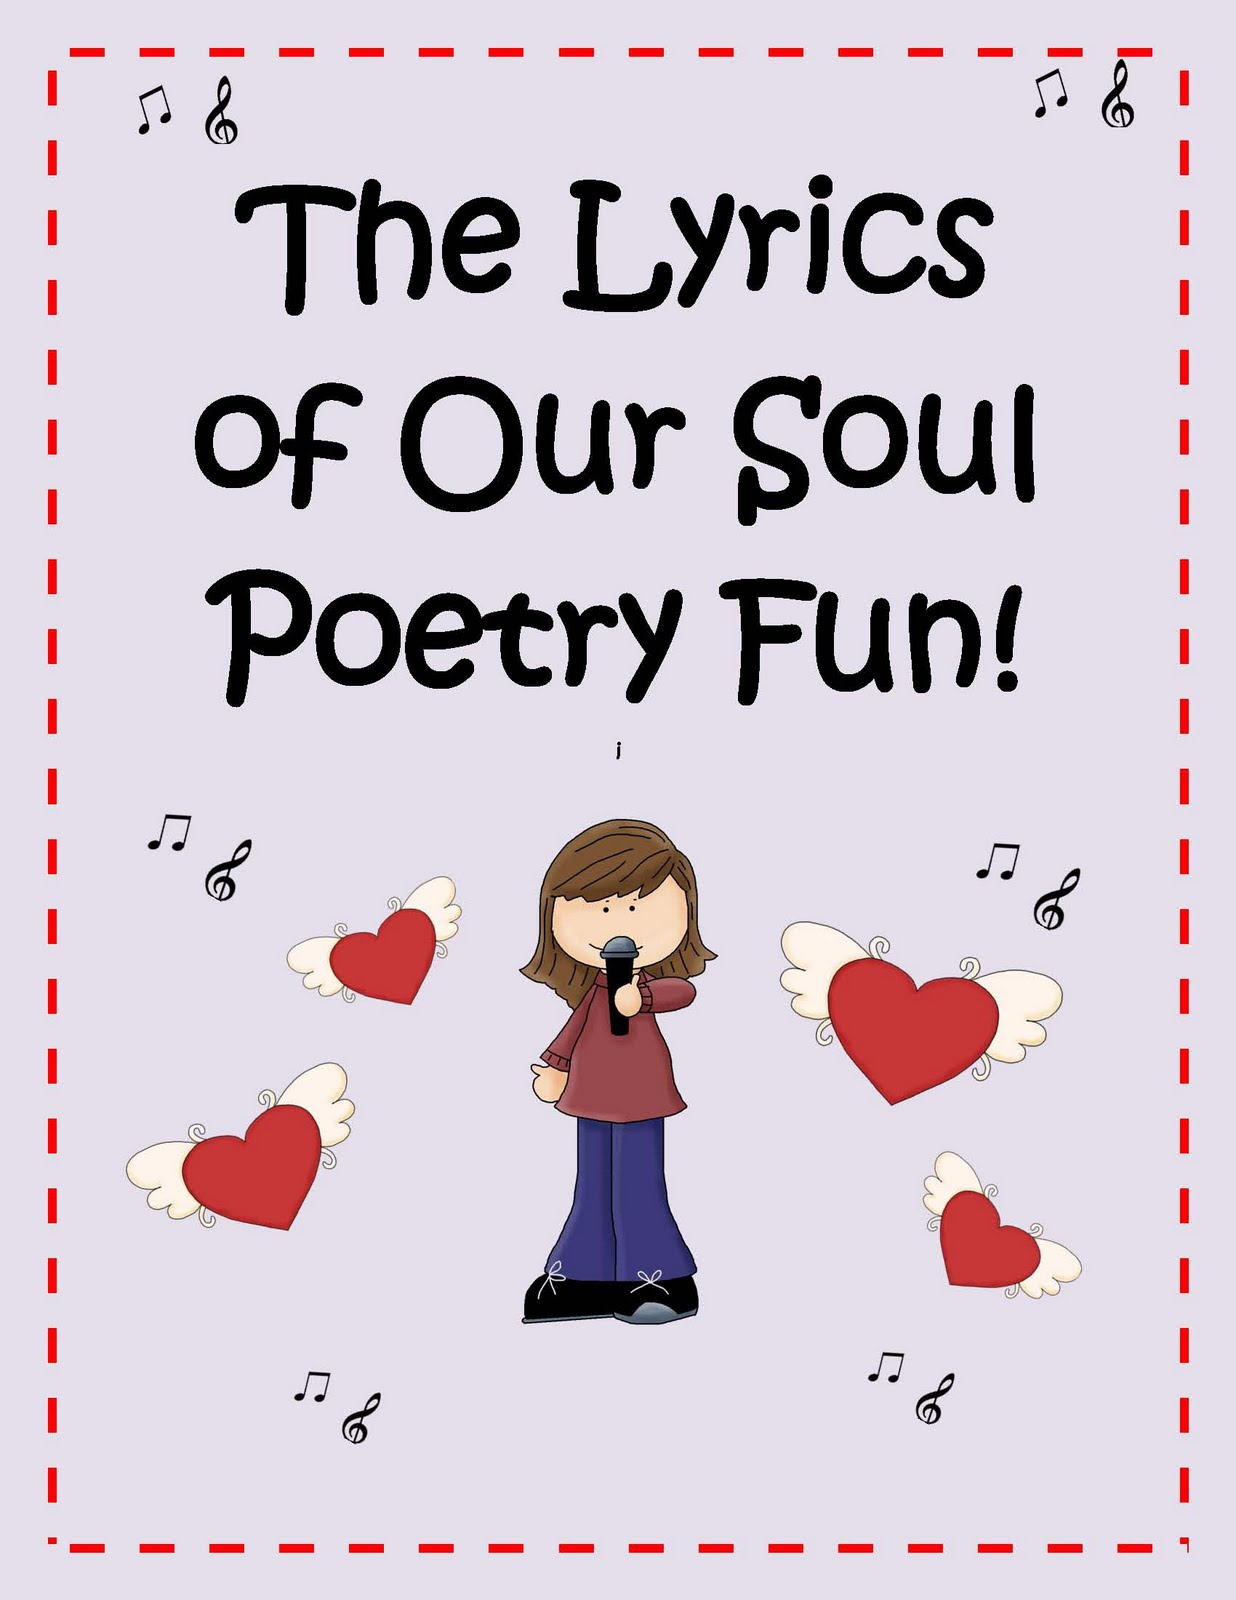 Little Miss Middle School Poetry Activities The Lyrics